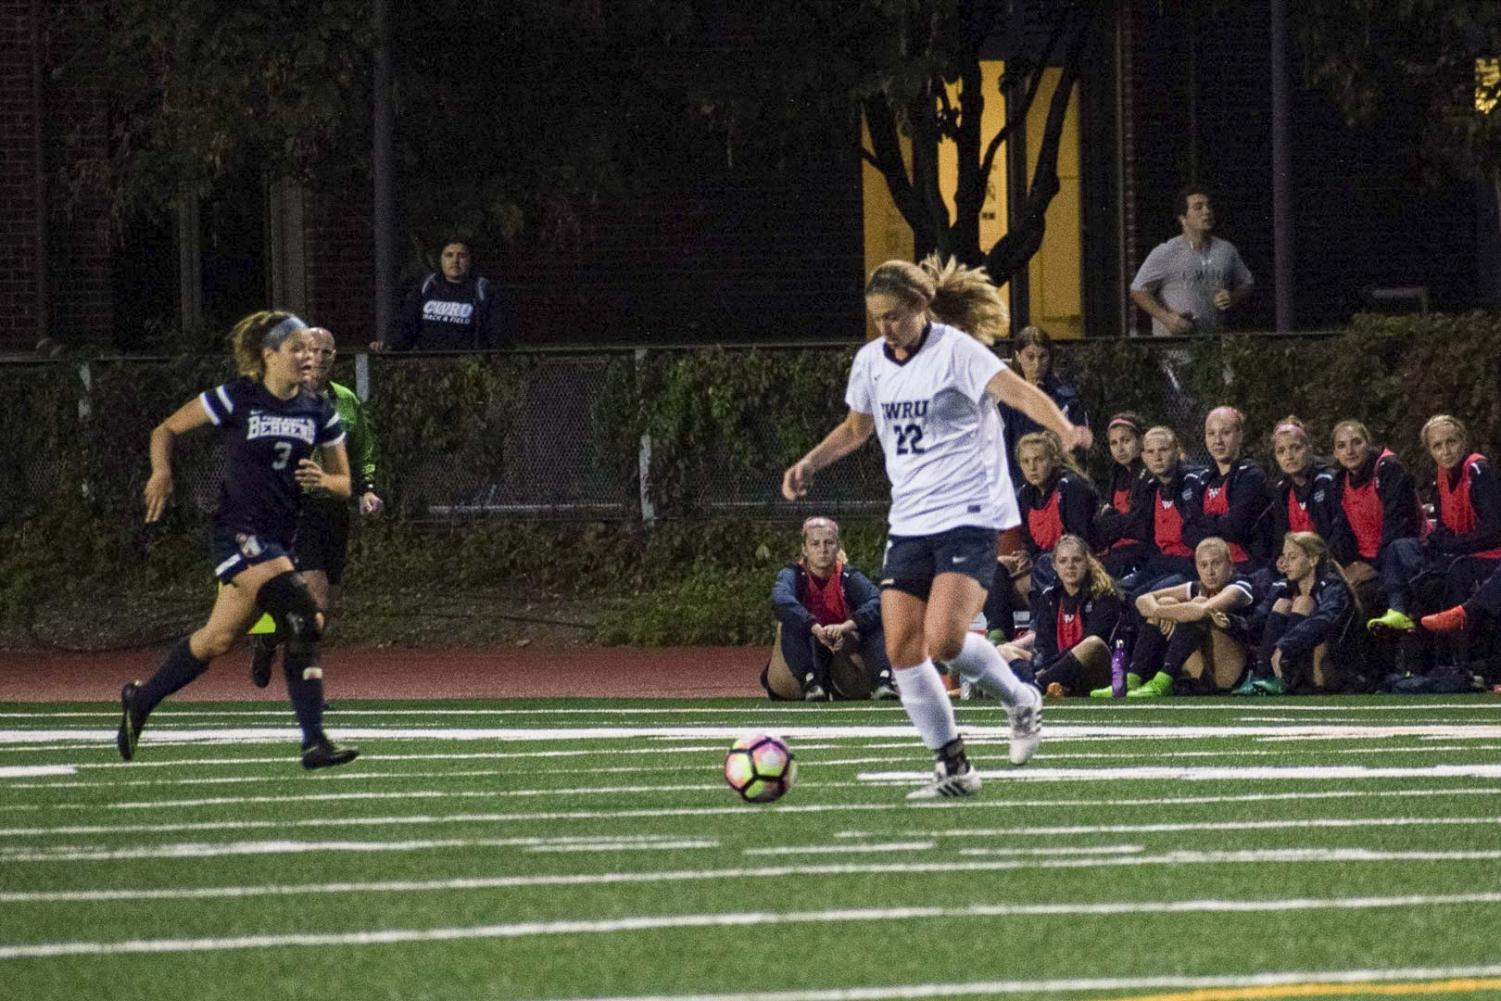 The women's soccer team took on the No. 1 and No. 2 teams in the country, losing both conferece matches.